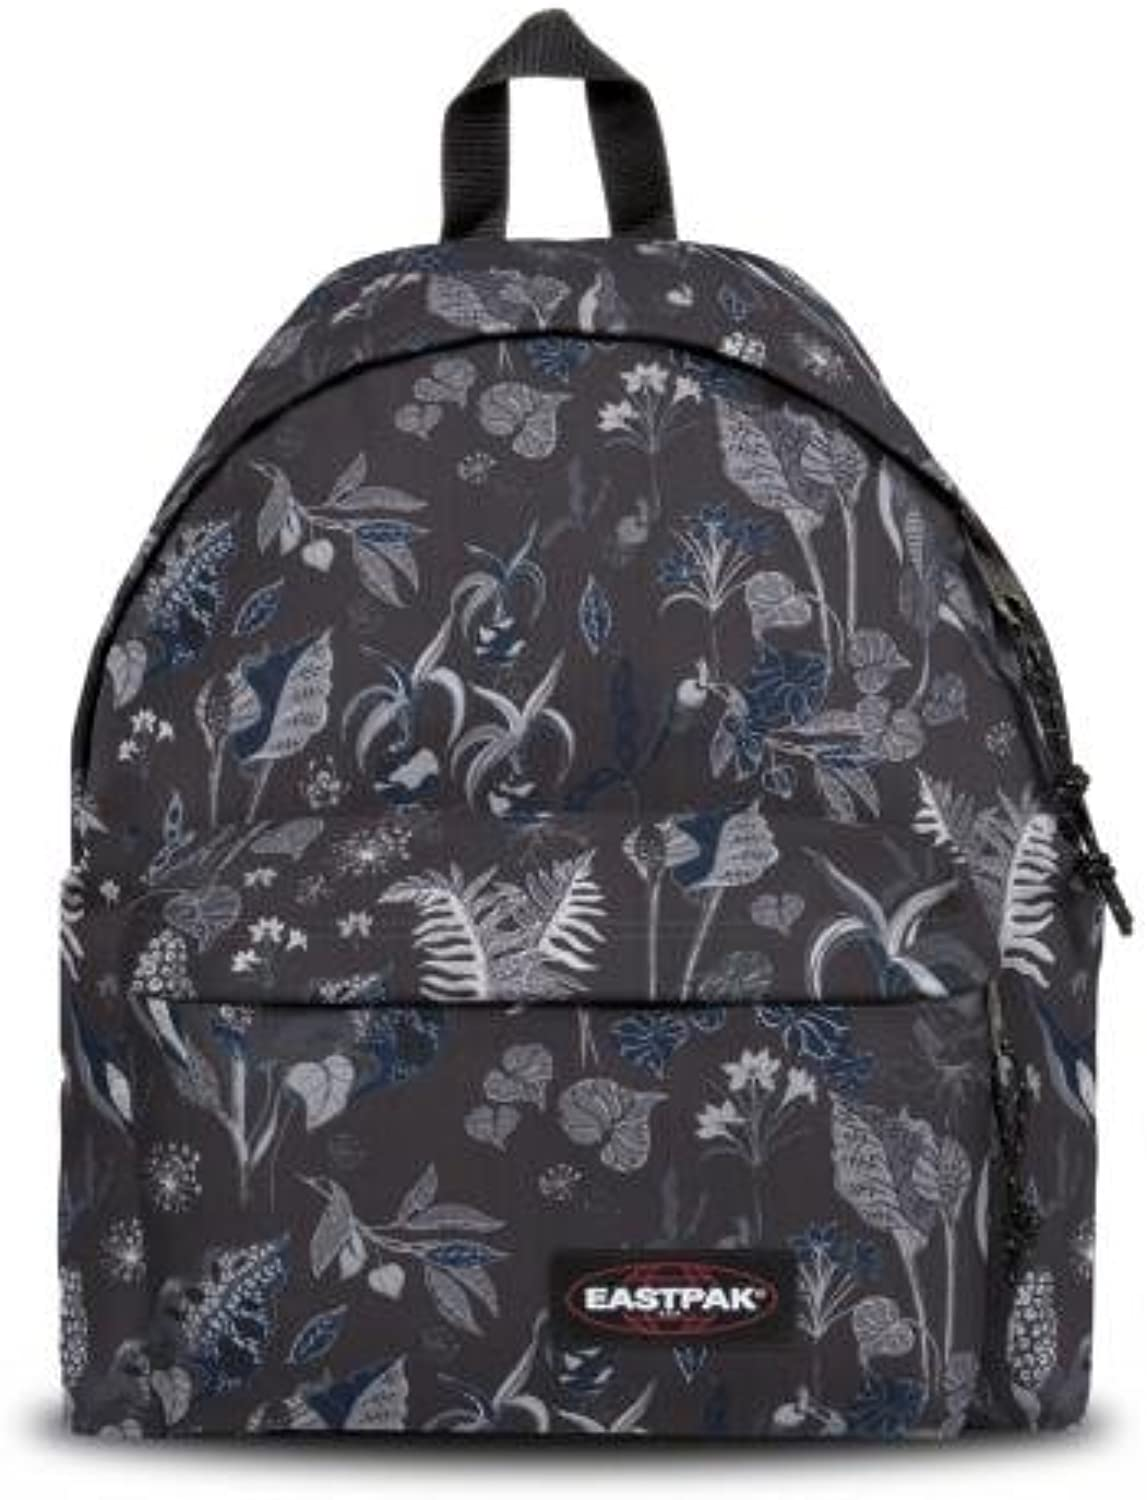 (Fern blueee) - Eastpak Padded Pak 'r School Bag, 42 cm, Fern blueee (multi-coloured) - EK62040N